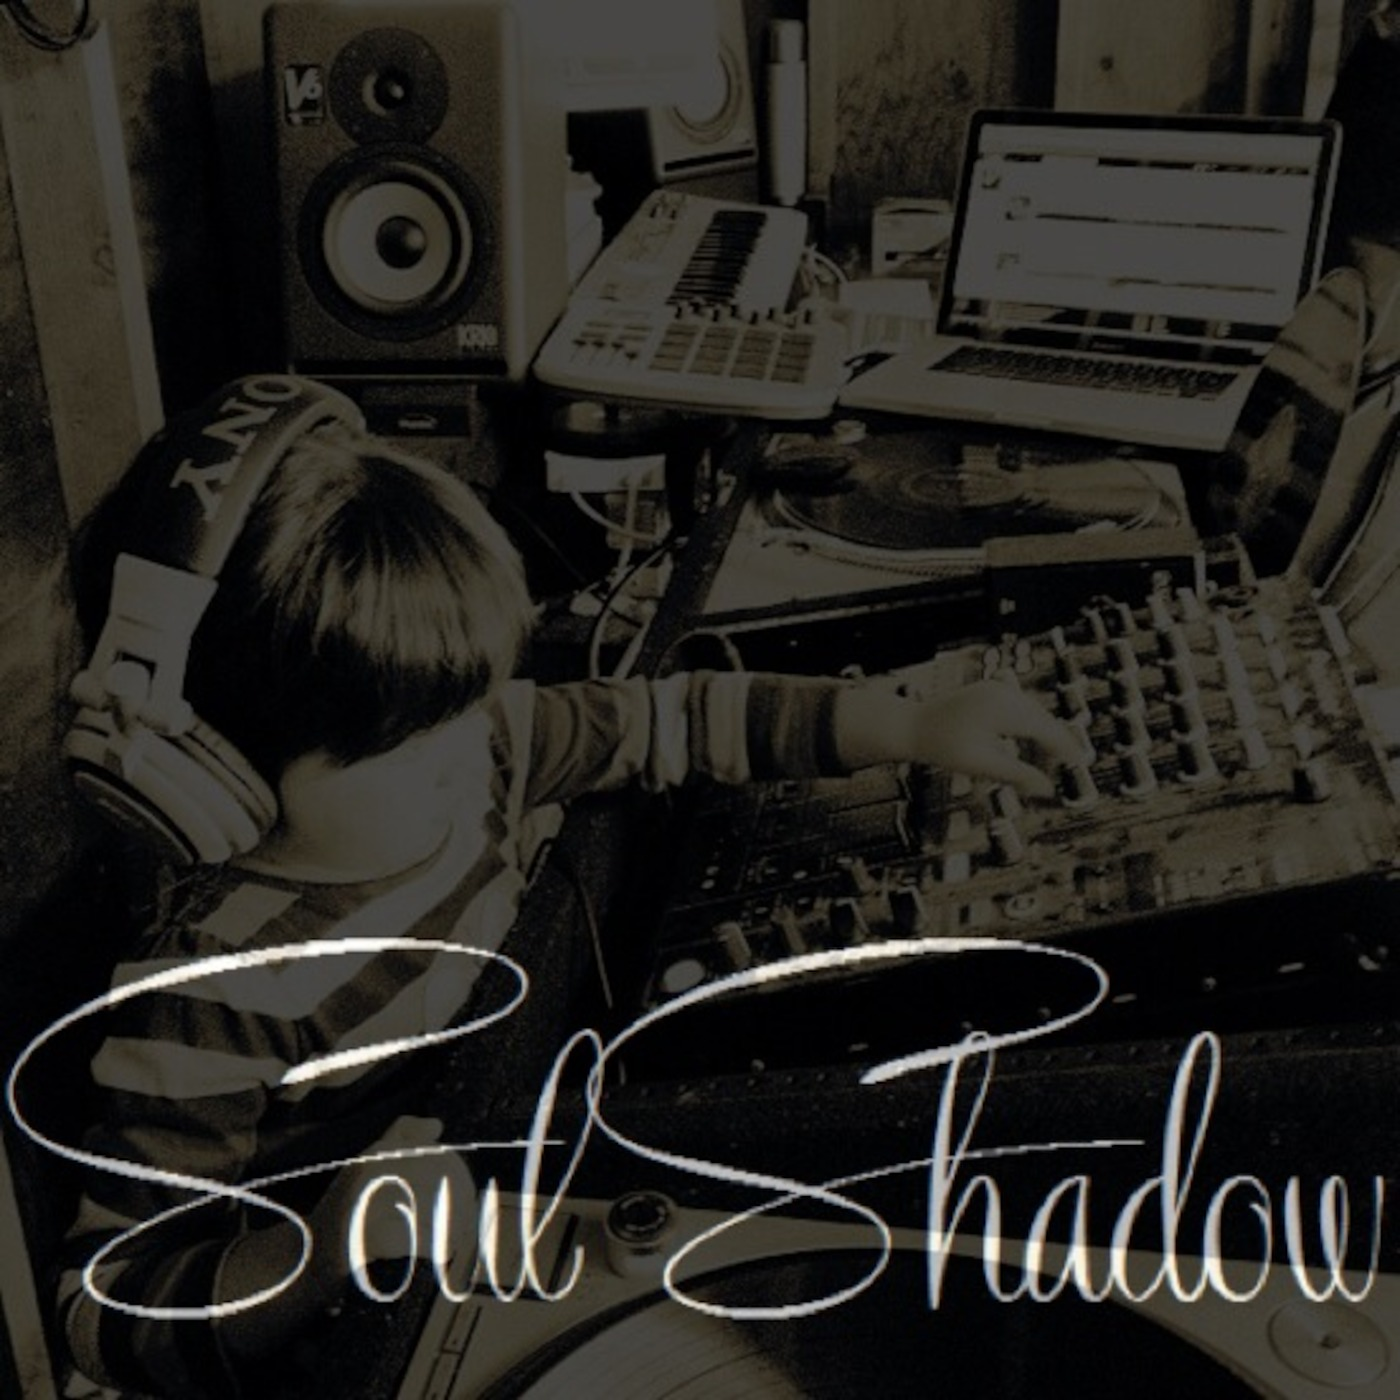 SOULSHADOW - sTRICKly hoUSe